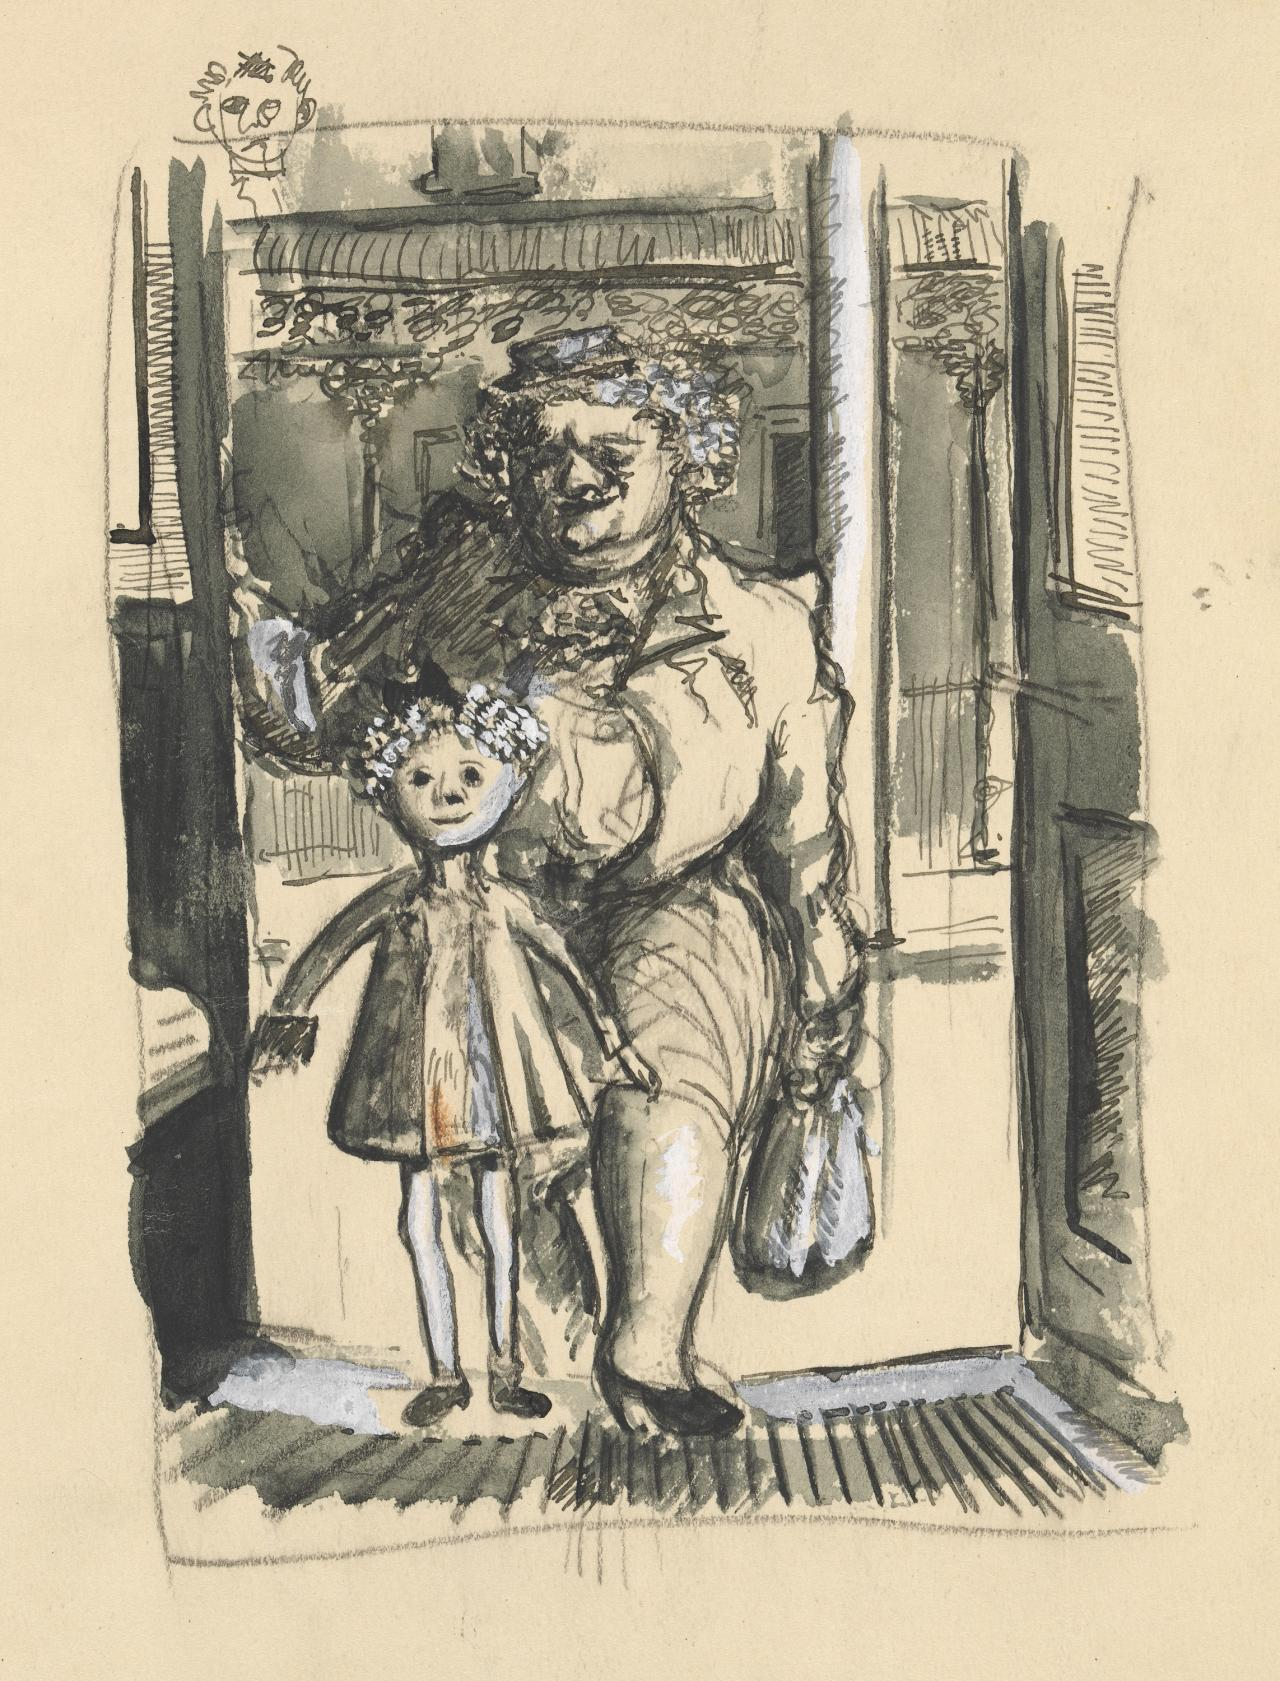 (Woman and child entering tram)